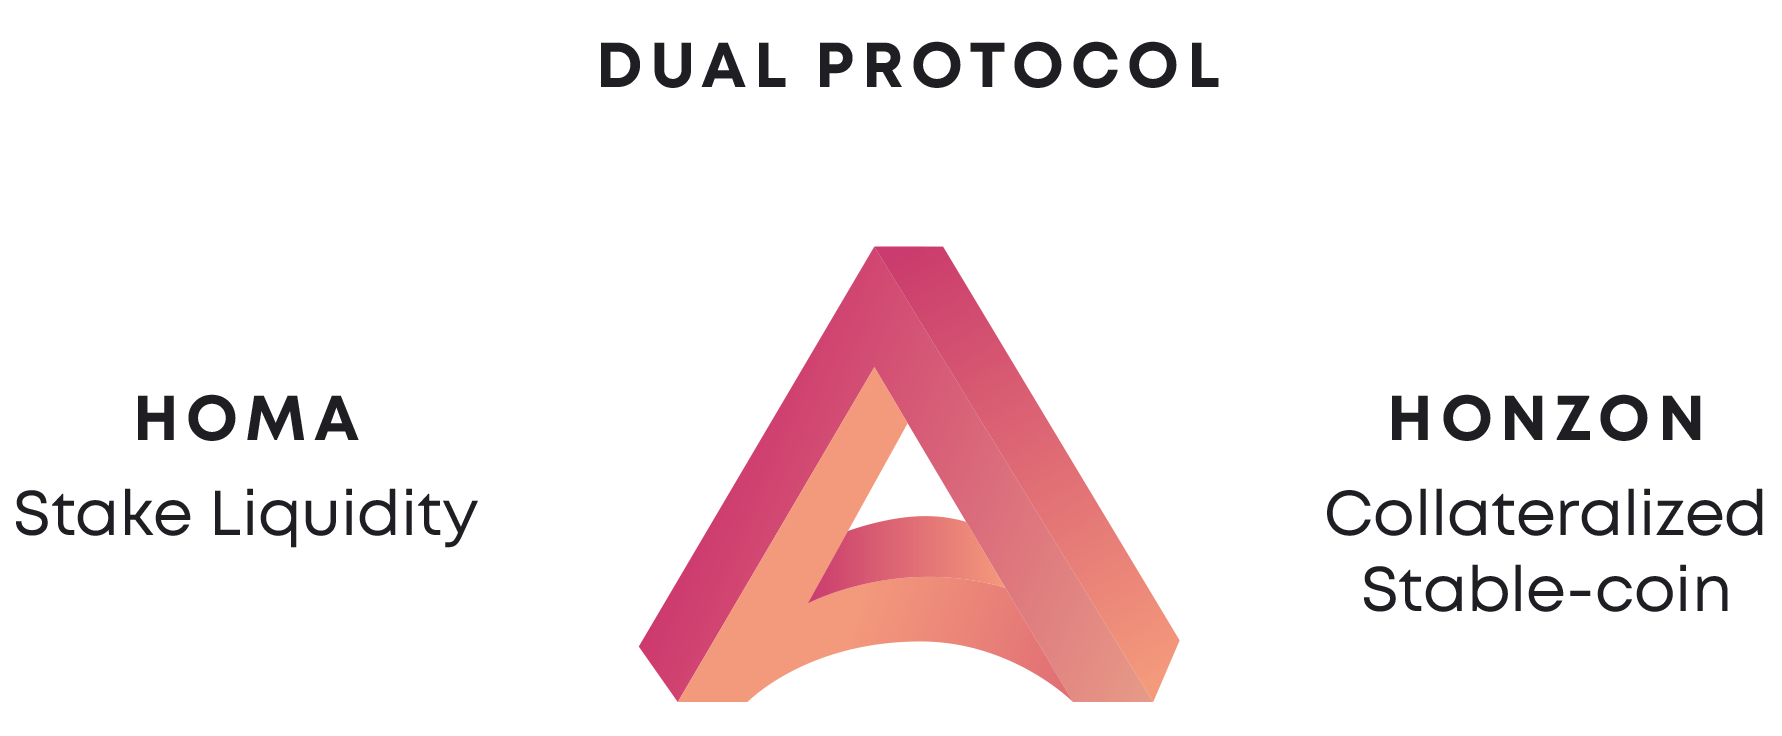 Acala project on polkadot dual protocol